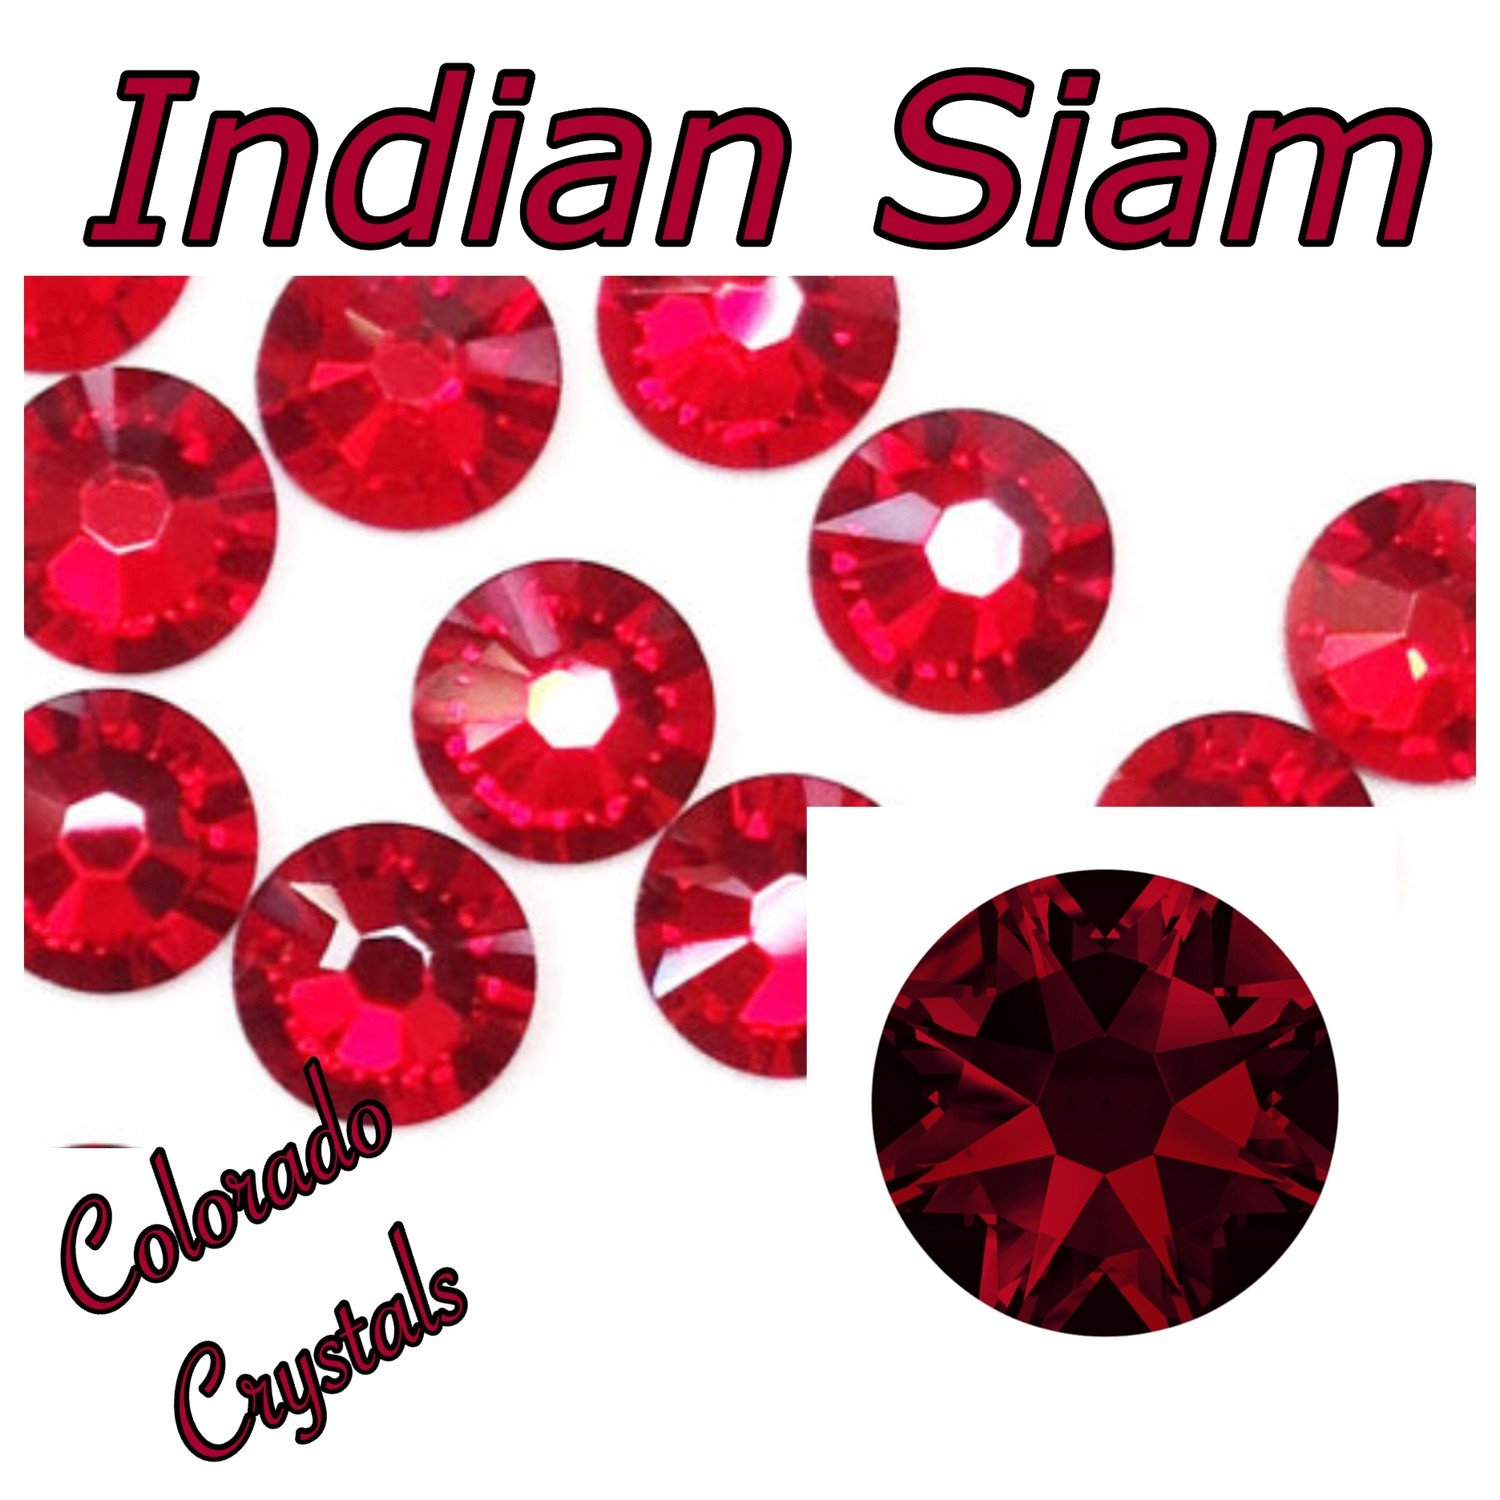 Indian Siam 20ss 2088